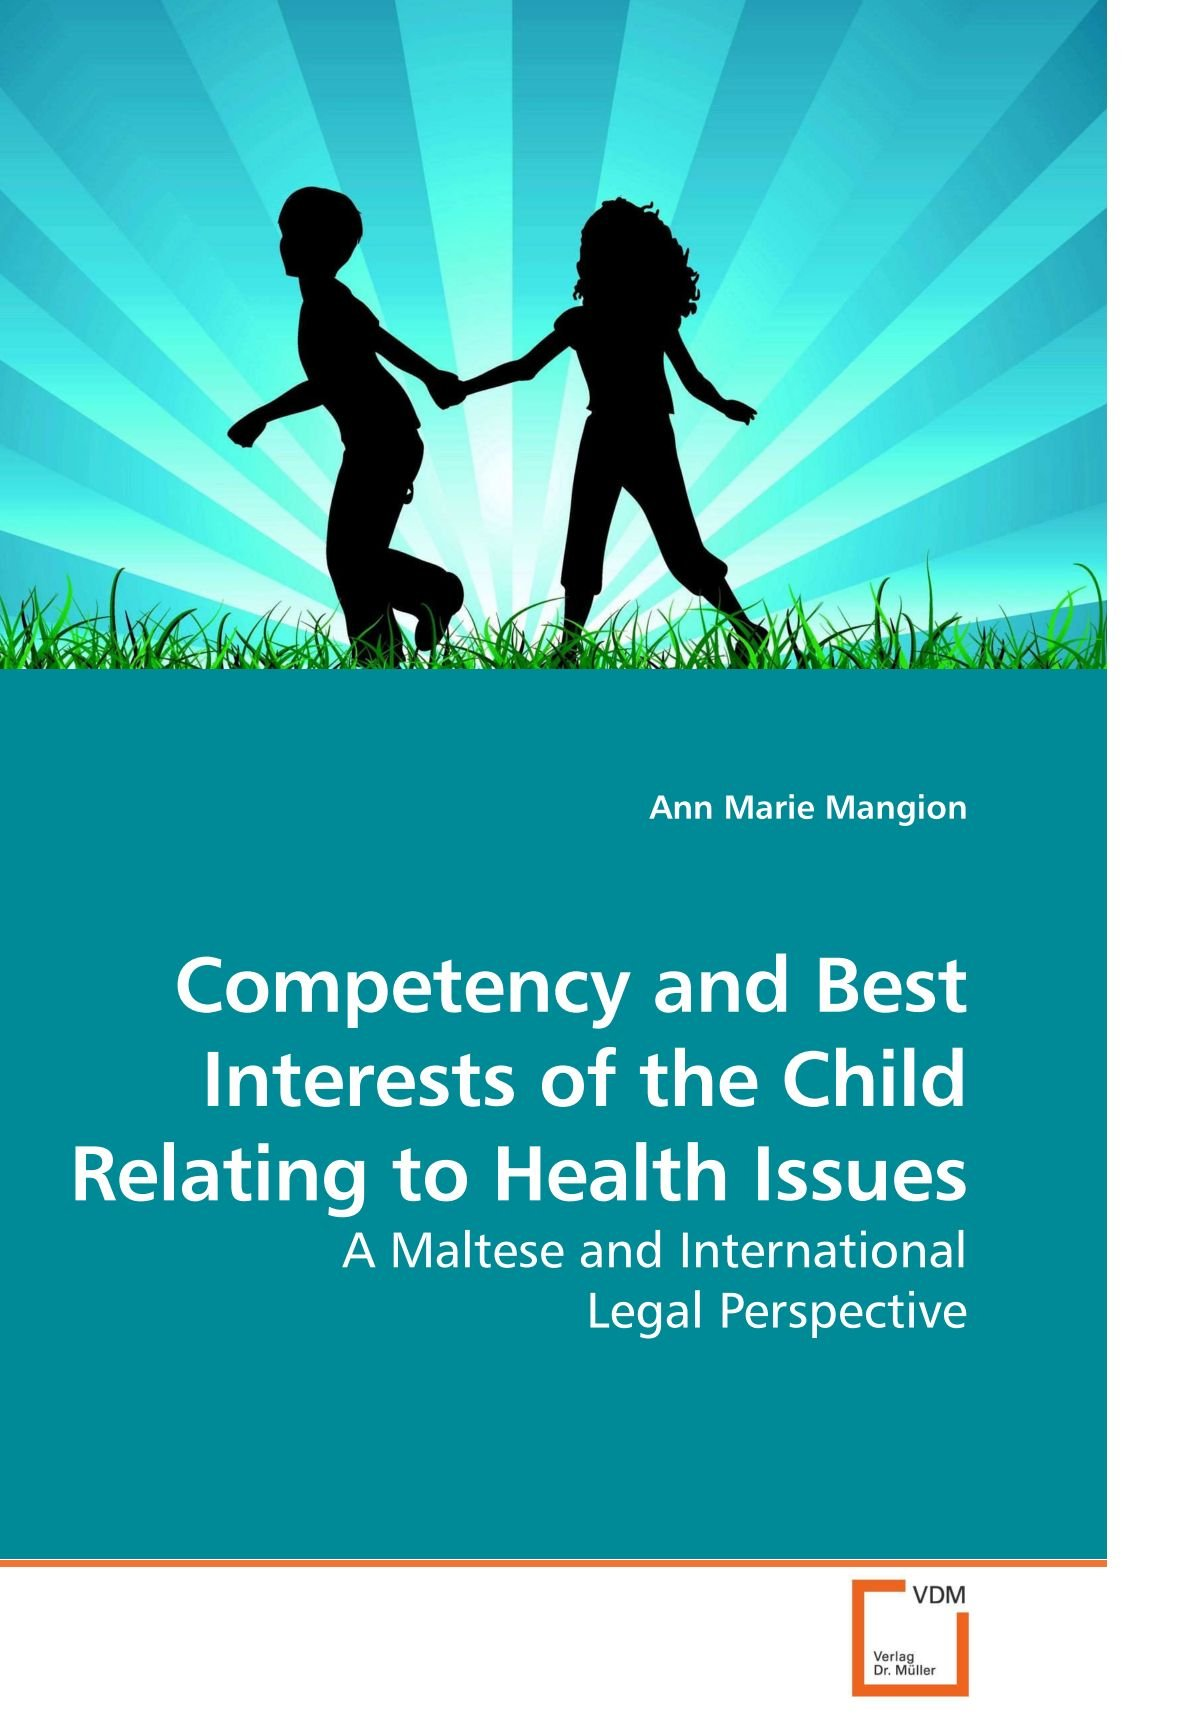 Competency and Best Interests of the Child Relating to Health Issues: A Maltese and International Legal Perspective